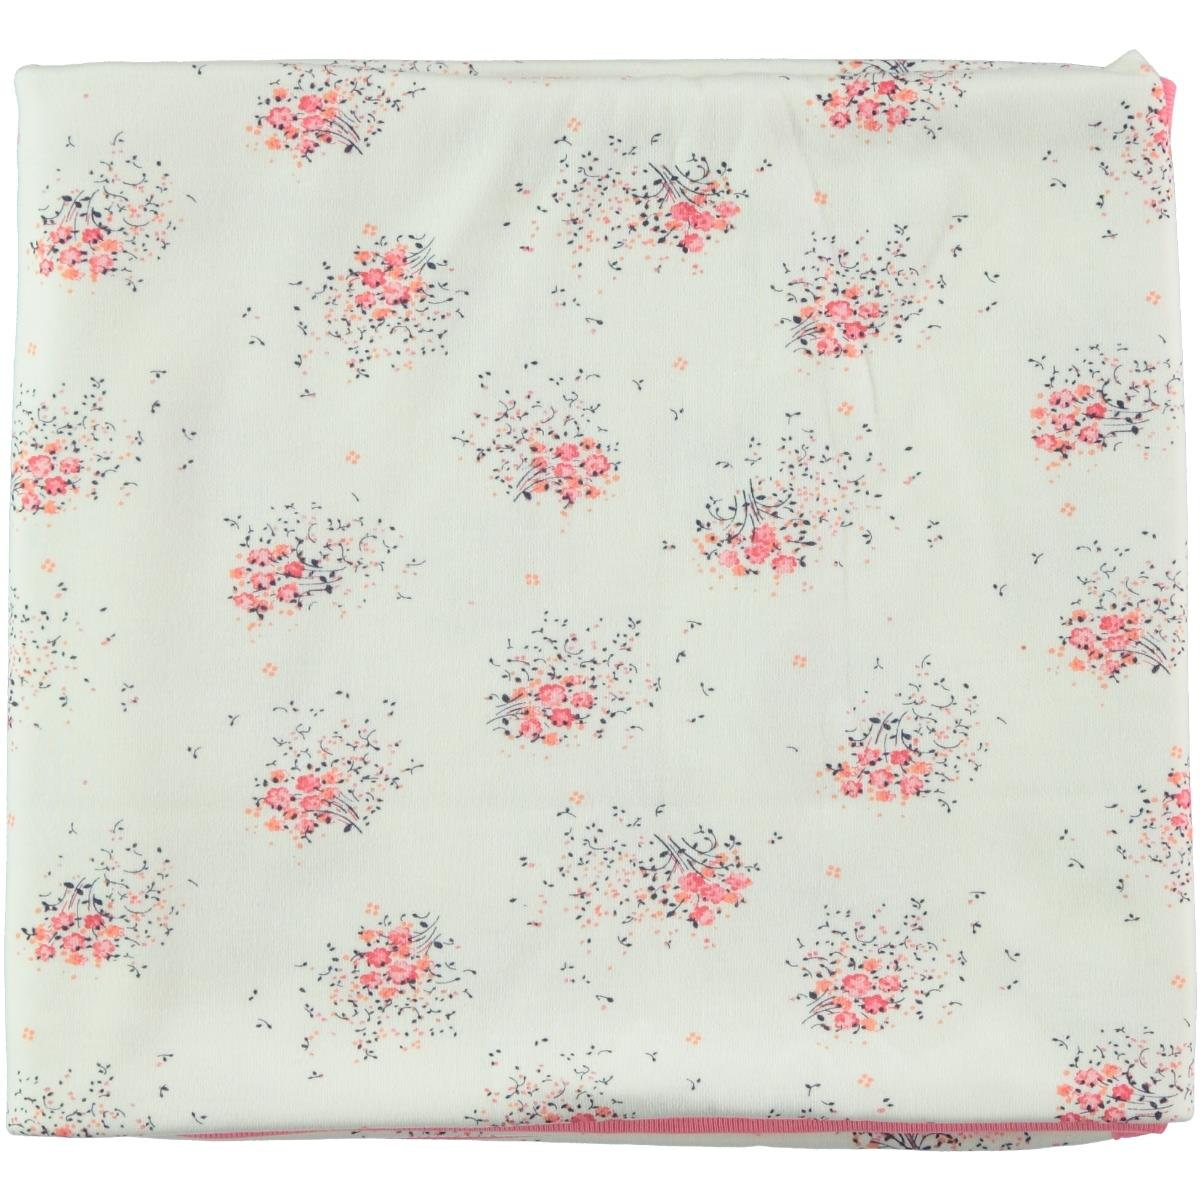 Civil Baby Powder pink baby girl Blanket, 85x95 Cm double